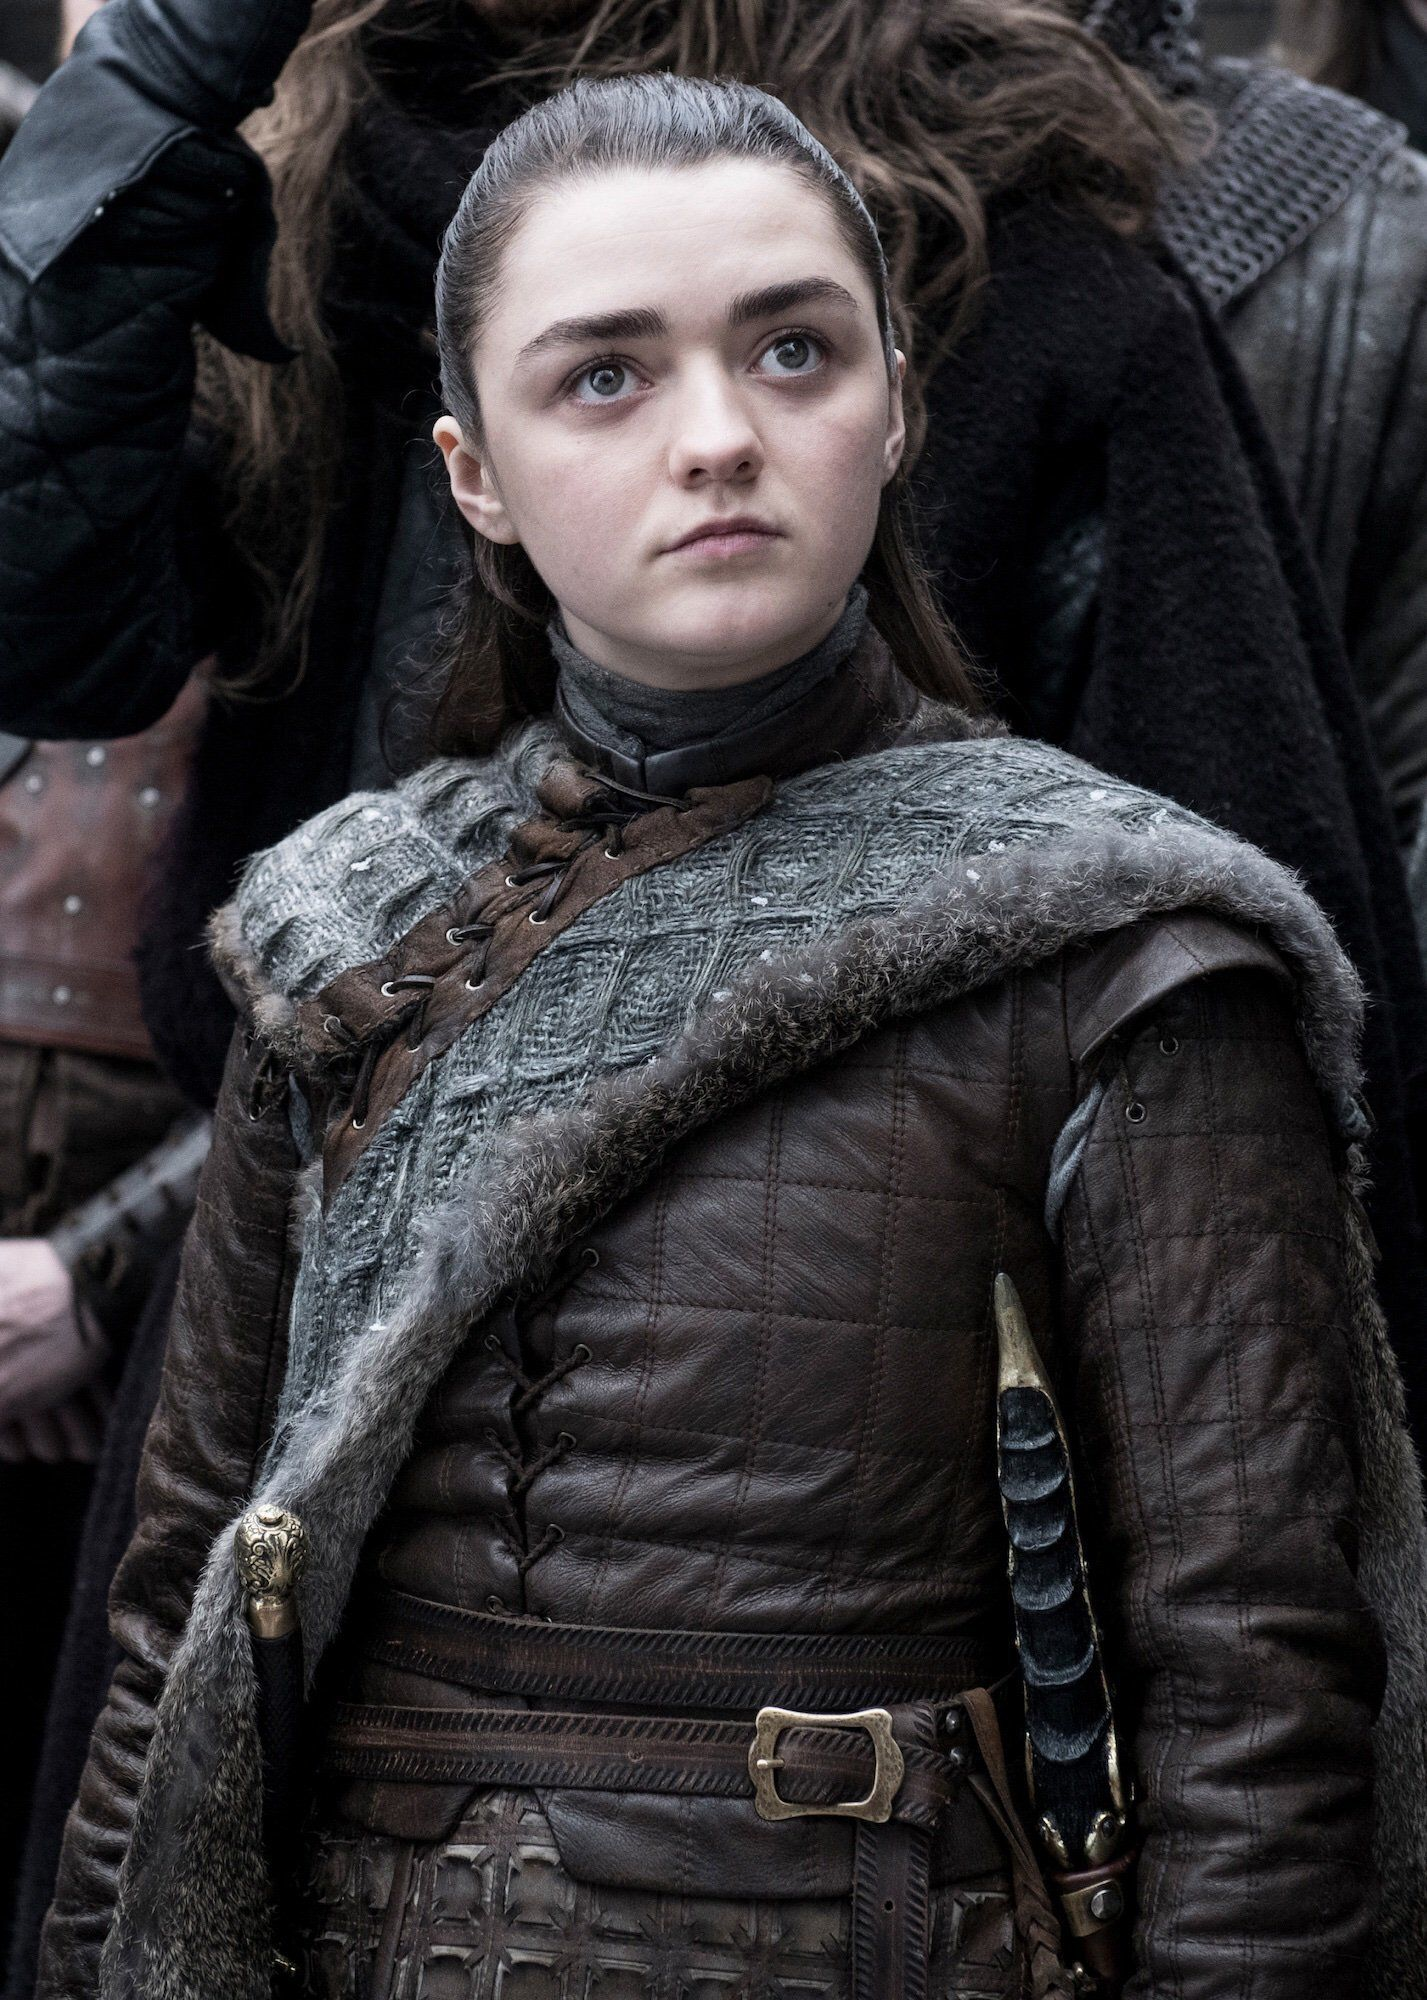 Maisie Williams Gets Own 'Game Of Thrones' Spinoff In This